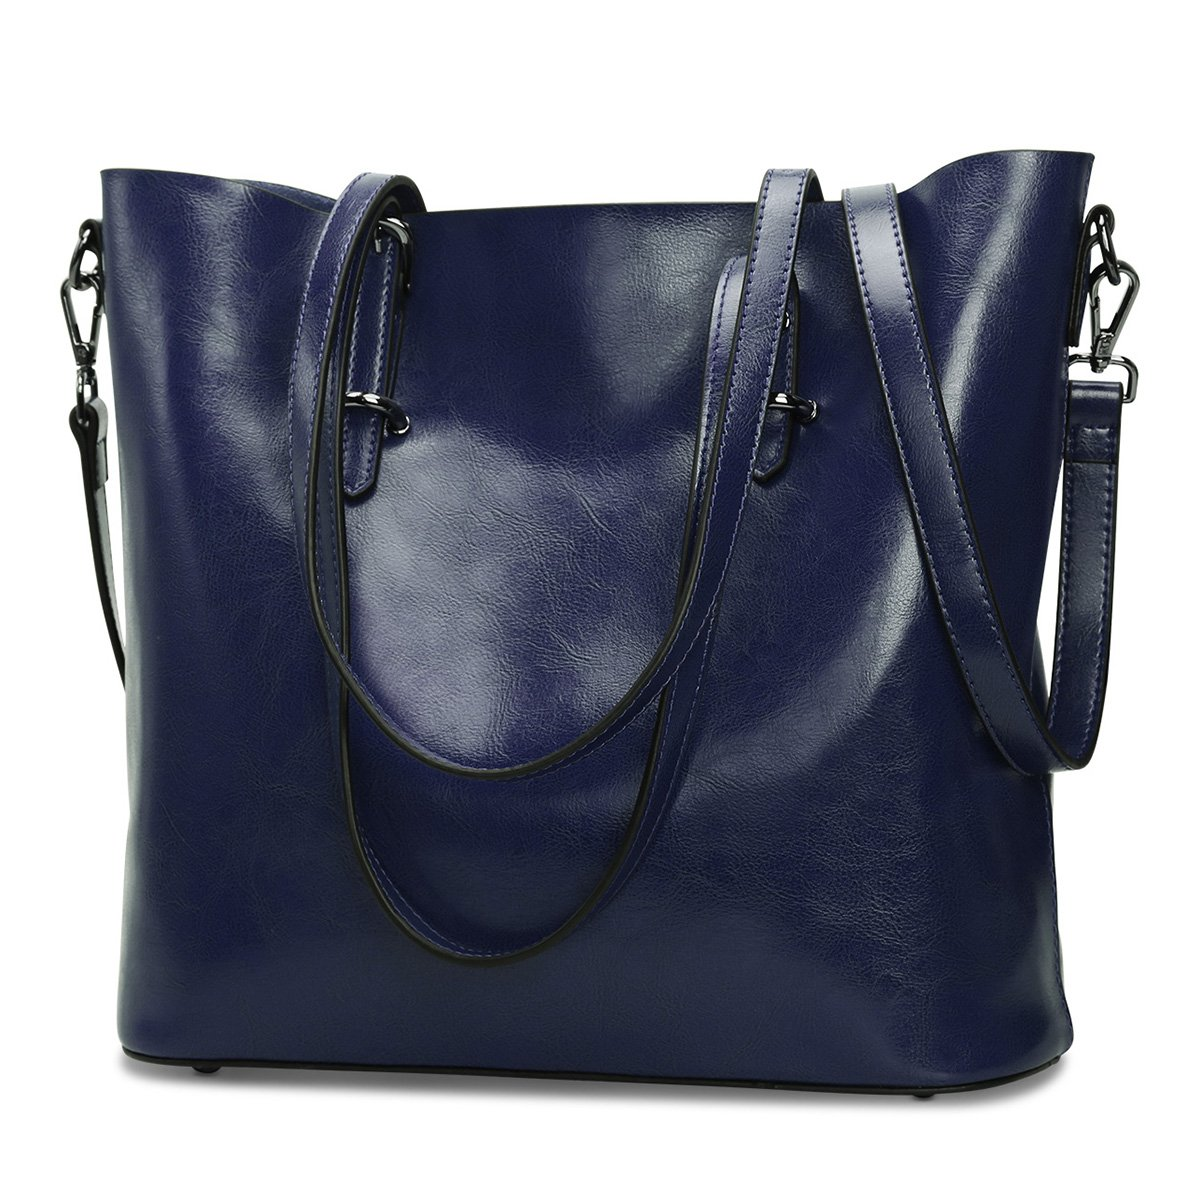 S-ZONE Women Leather Top Handle Handbag Cross Body Shoulder Bag Messenger Tote Bag Purse (Blue)